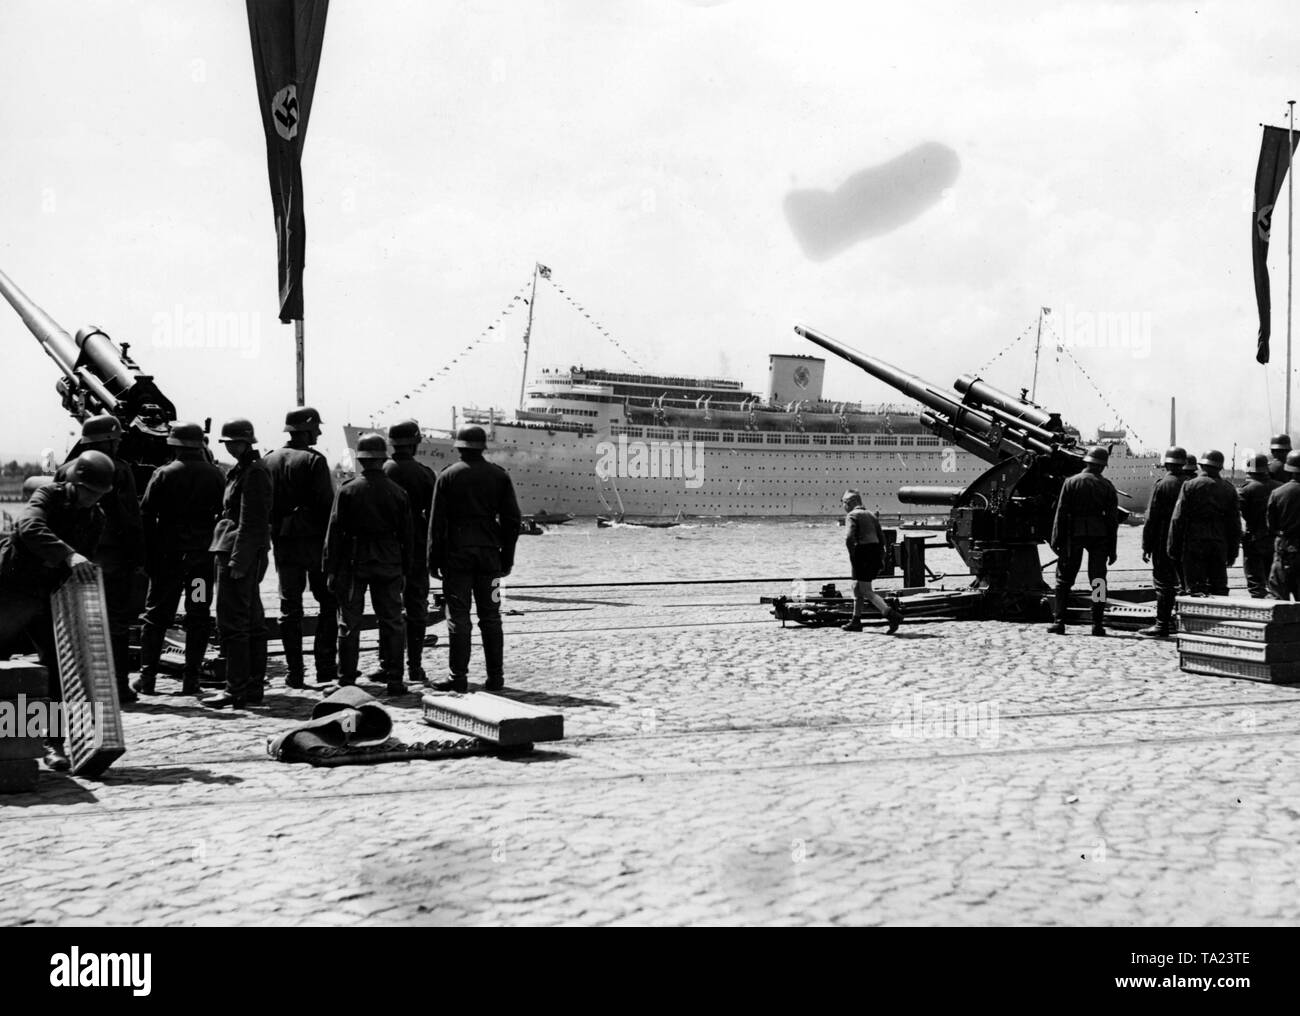 As the flagship of the KdF fleet 'Robert Ley' with the staff of the Condor Legion and Wolfram von Richthofen on board, passes by Neumuehlen and the gangways of Hamburg, the salute batteries of a Flakartillerie 8.8cm FlaK 36 (Antiaircraft artillery) of the Luftwaffe (German Air Force) are welcoming it. - Stock Image